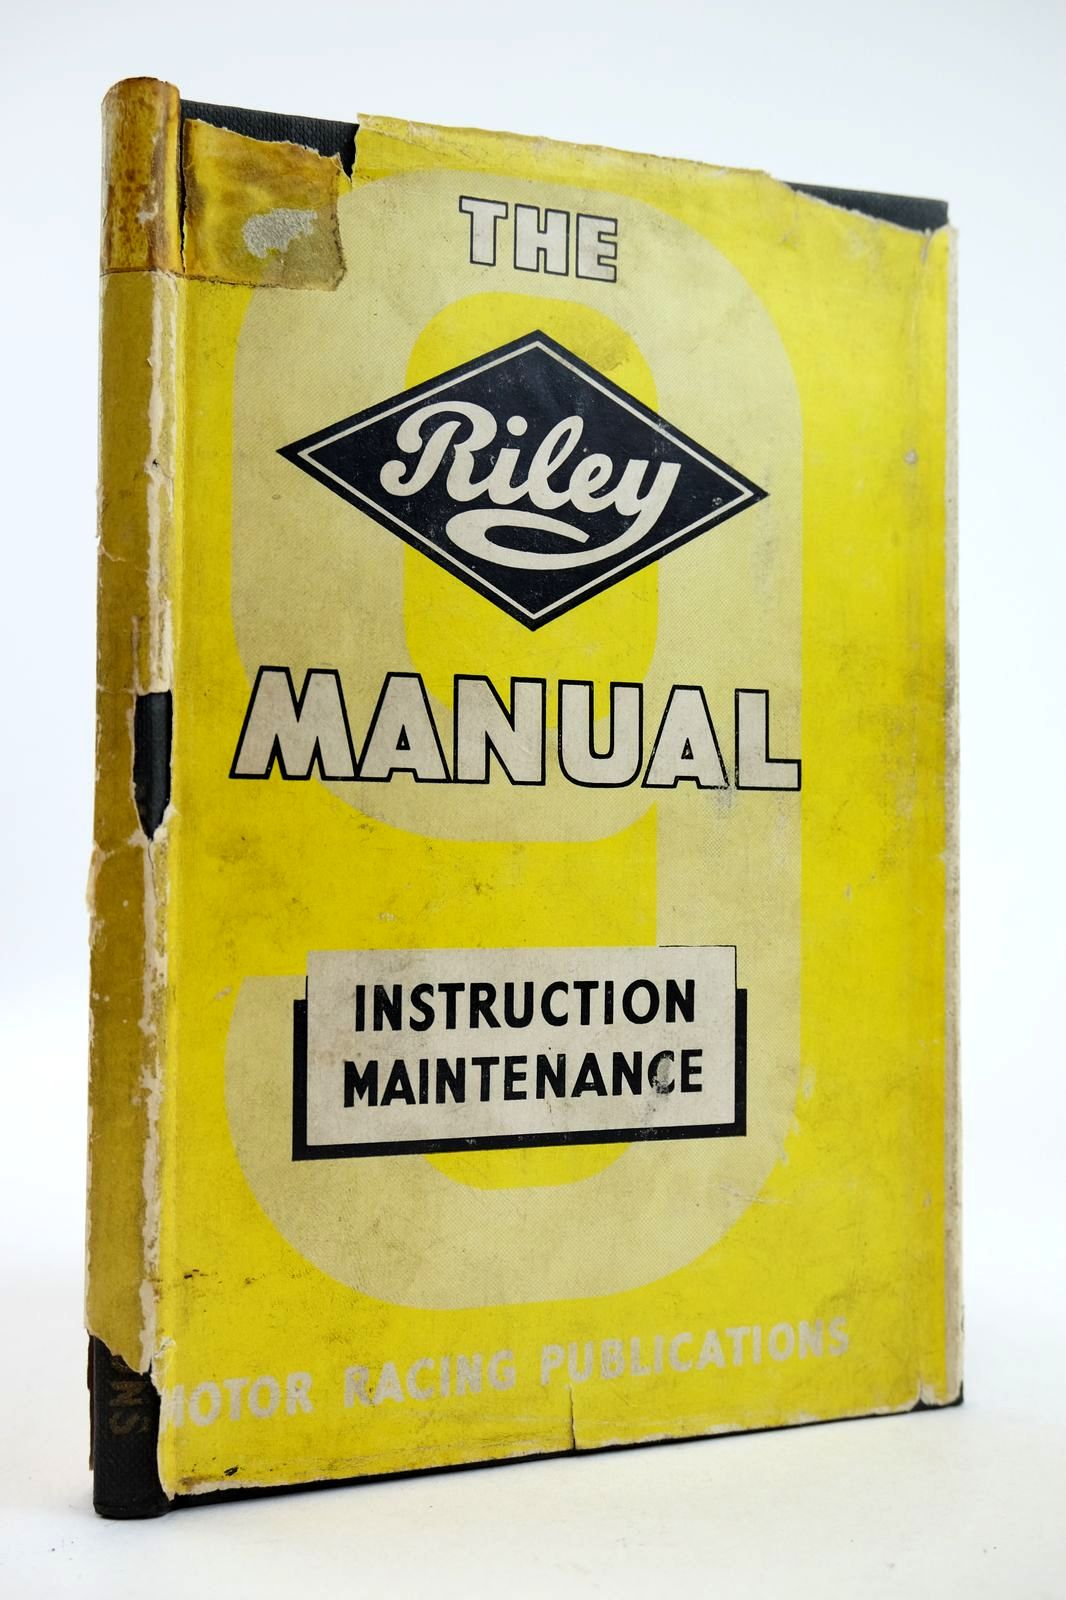 Photo of THE RILEY 9 MANUAL OF INSTRUCTION AND MAINTENANCE written by Robson, J.A. published by Motor Racing Publications Ltd. (STOCK CODE: 2132561)  for sale by Stella & Rose's Books